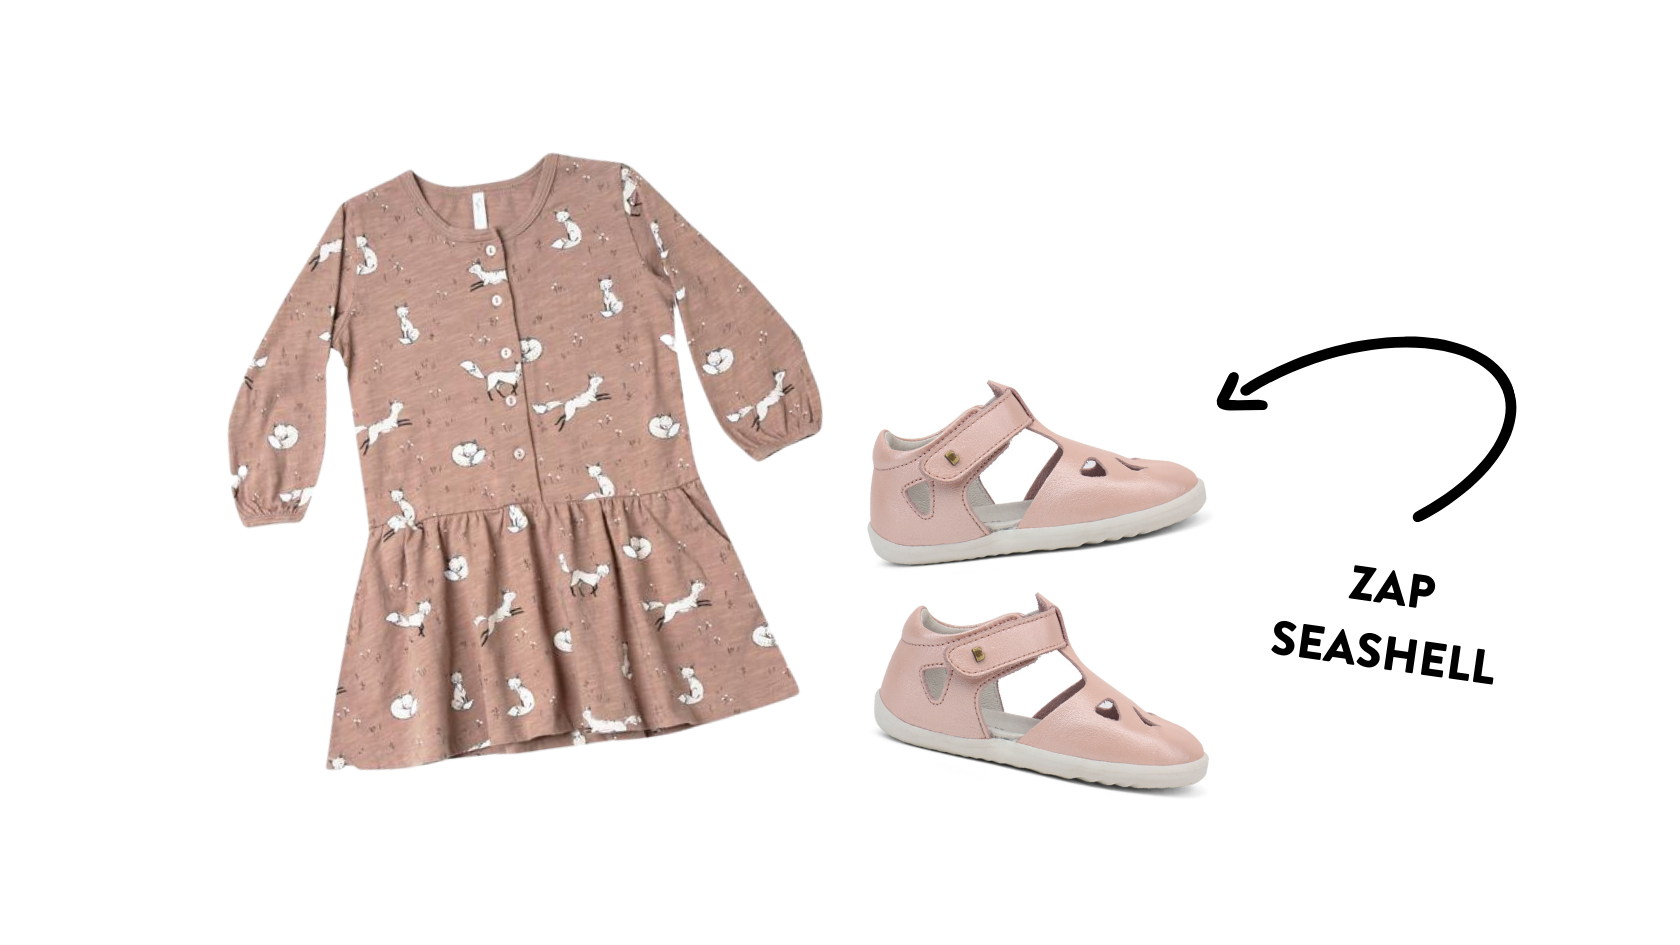 rylee cru winter fox button up pink dress bobux zap quickdry sandals seashell outfit